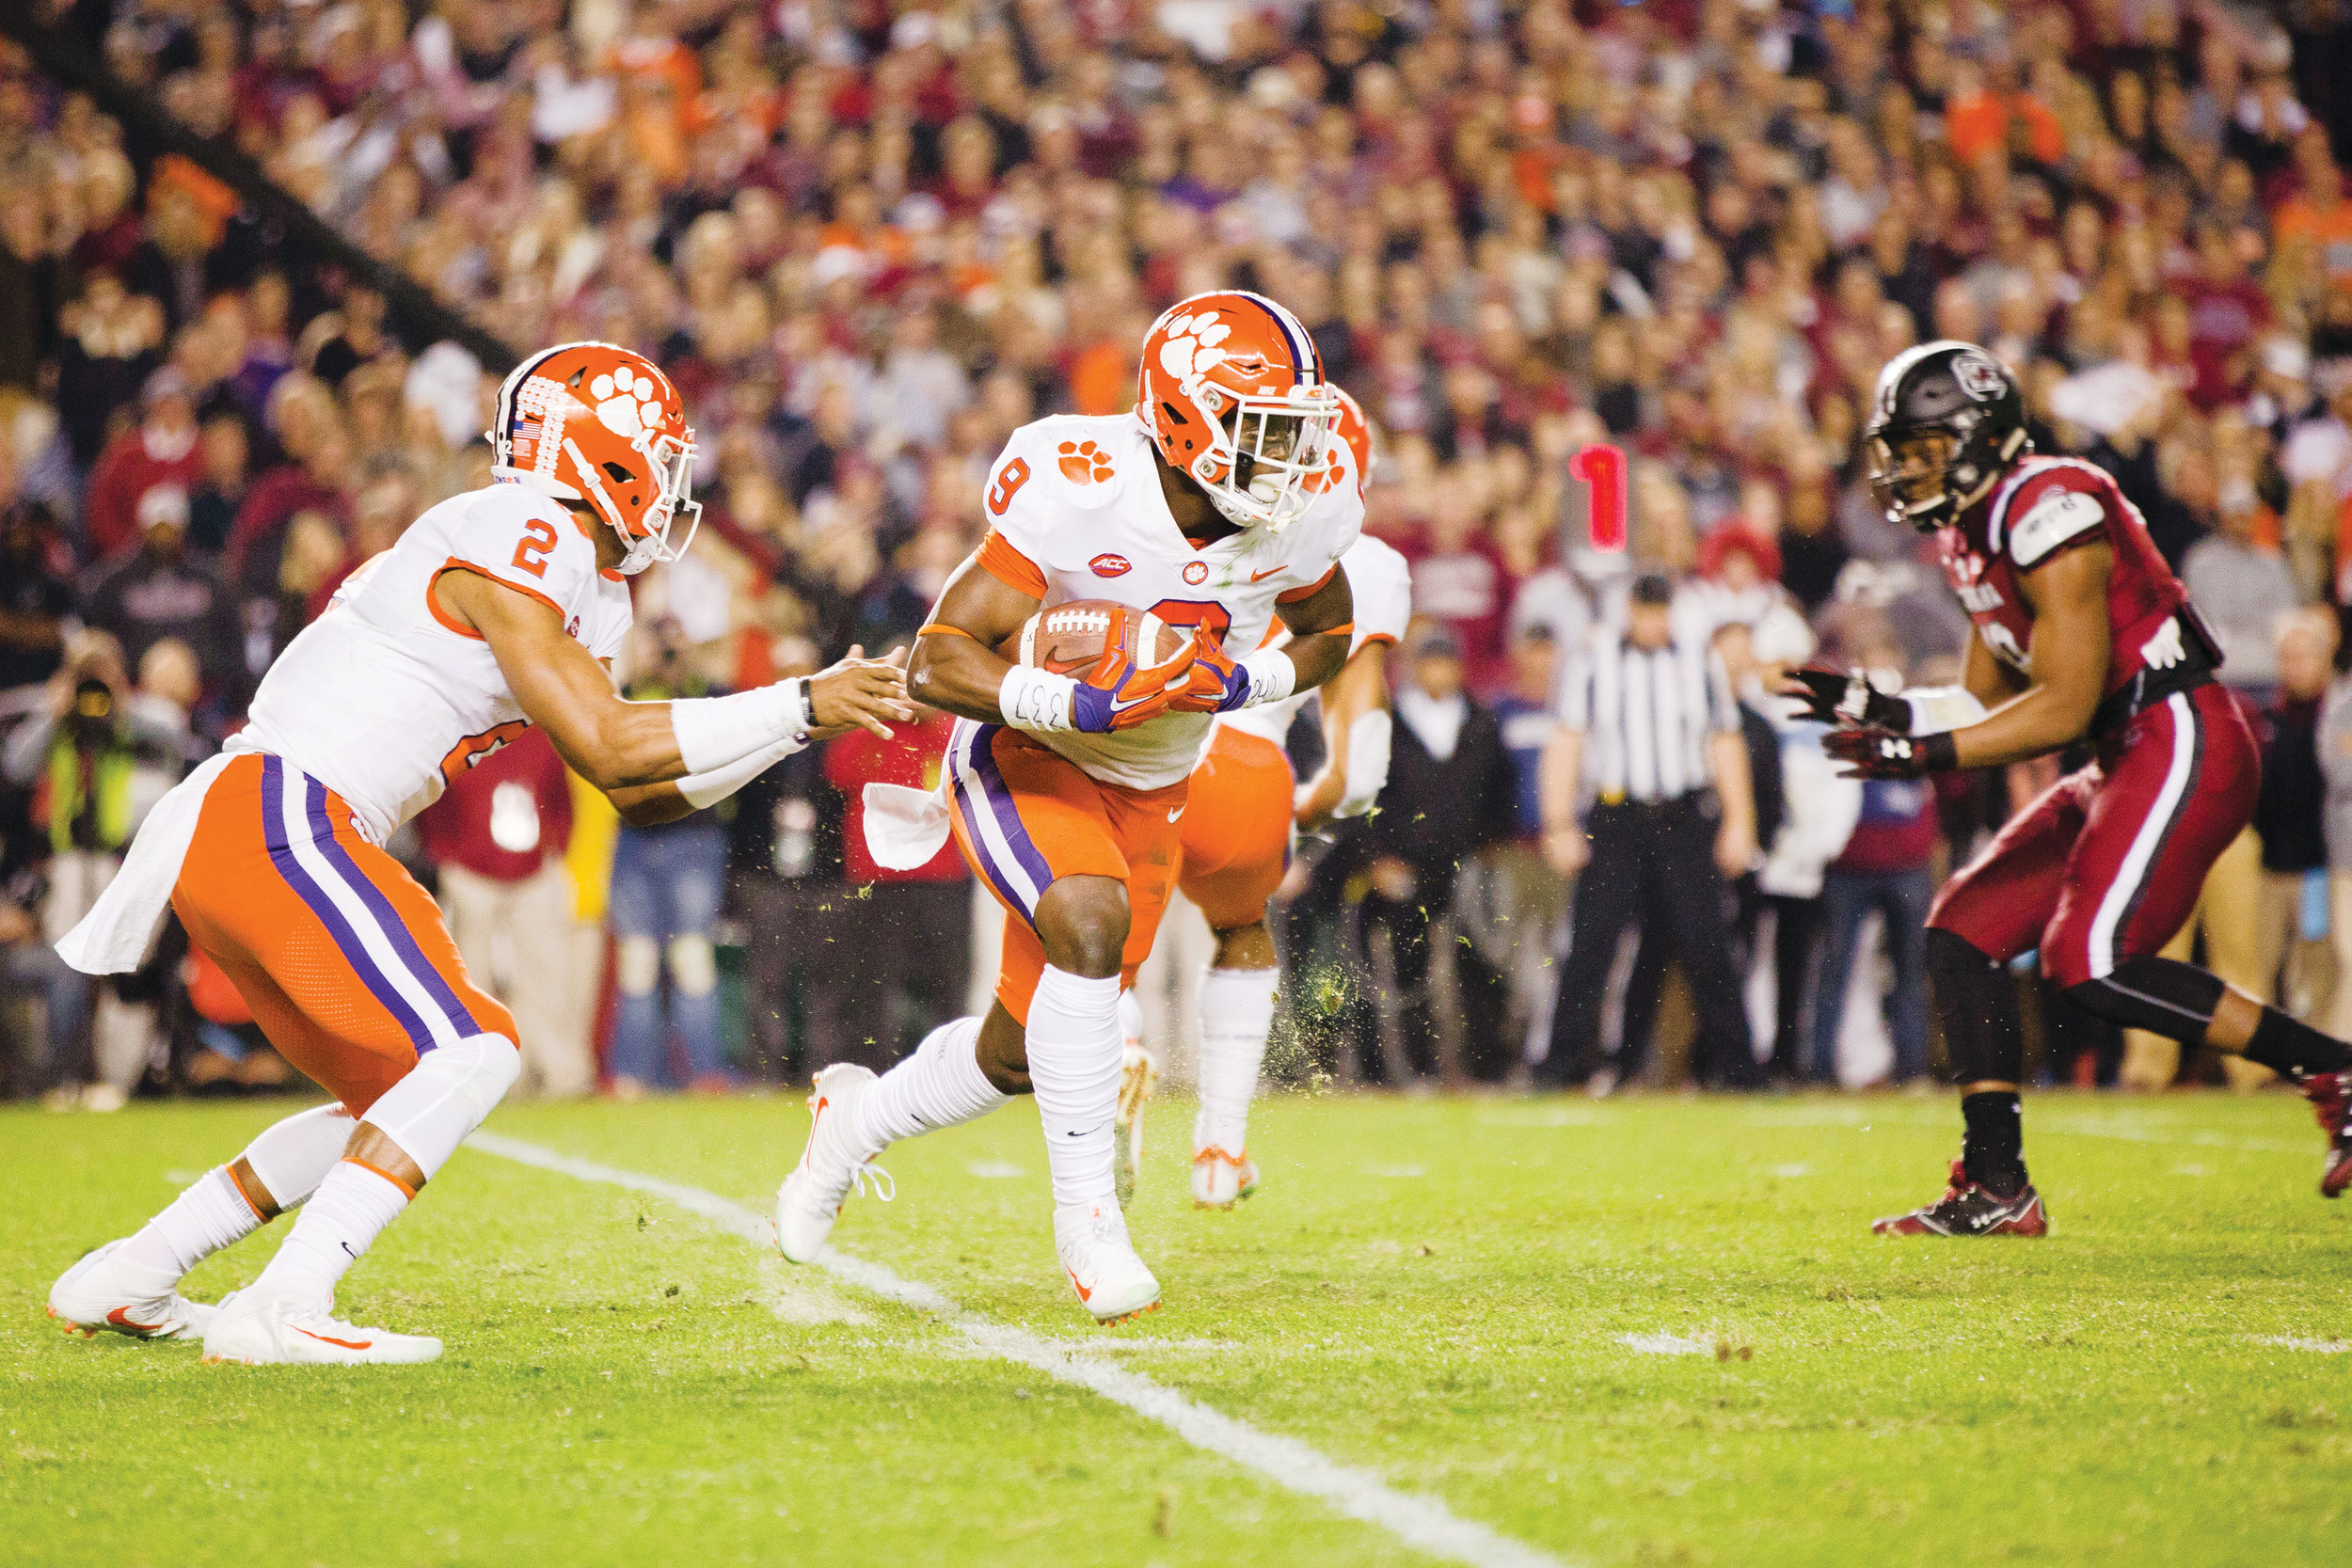 Clemson running back Travis Etienne (9) takes a handoff from quarterback Kelly Bryant (2) during the Tigers' 34-10 victory over South Carolina on Saturday at Williams-Brice Stadium in Columbia.